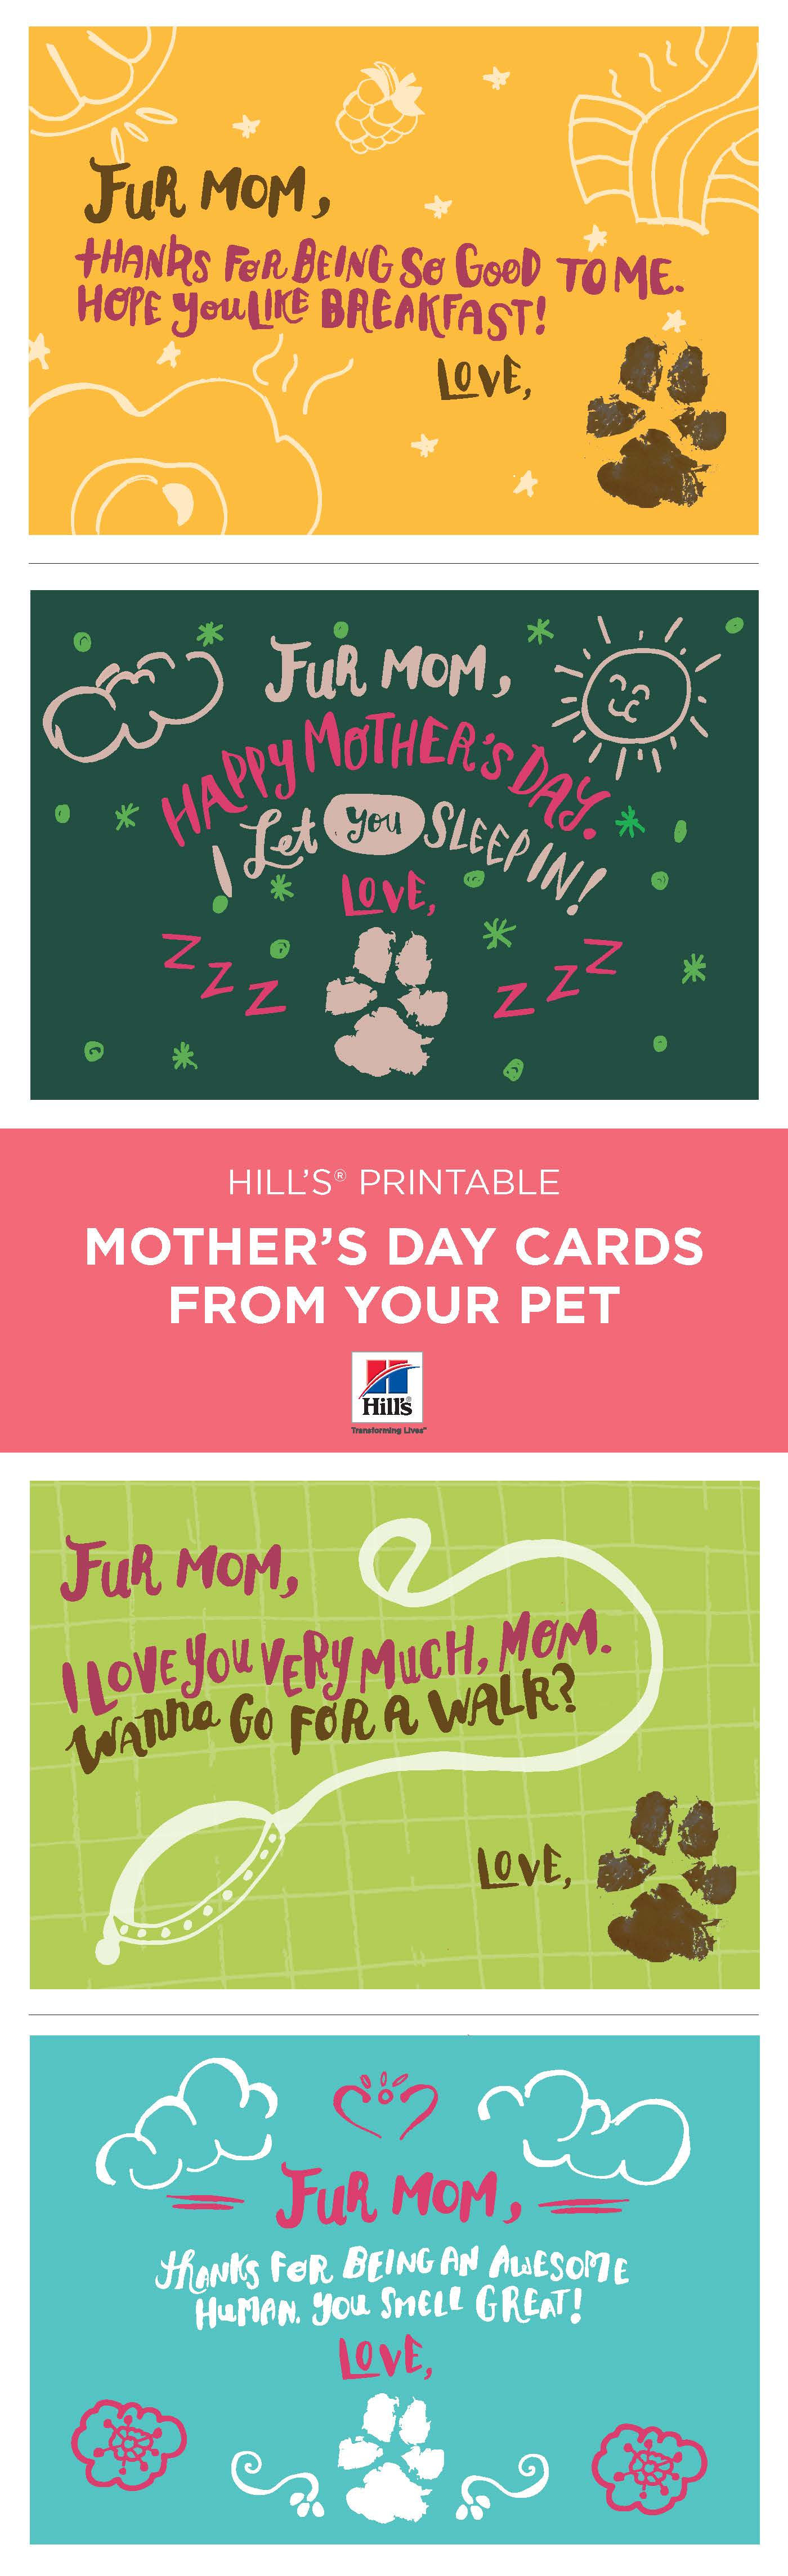 Free printable Mother's Day cards from your pet! Download yours today!